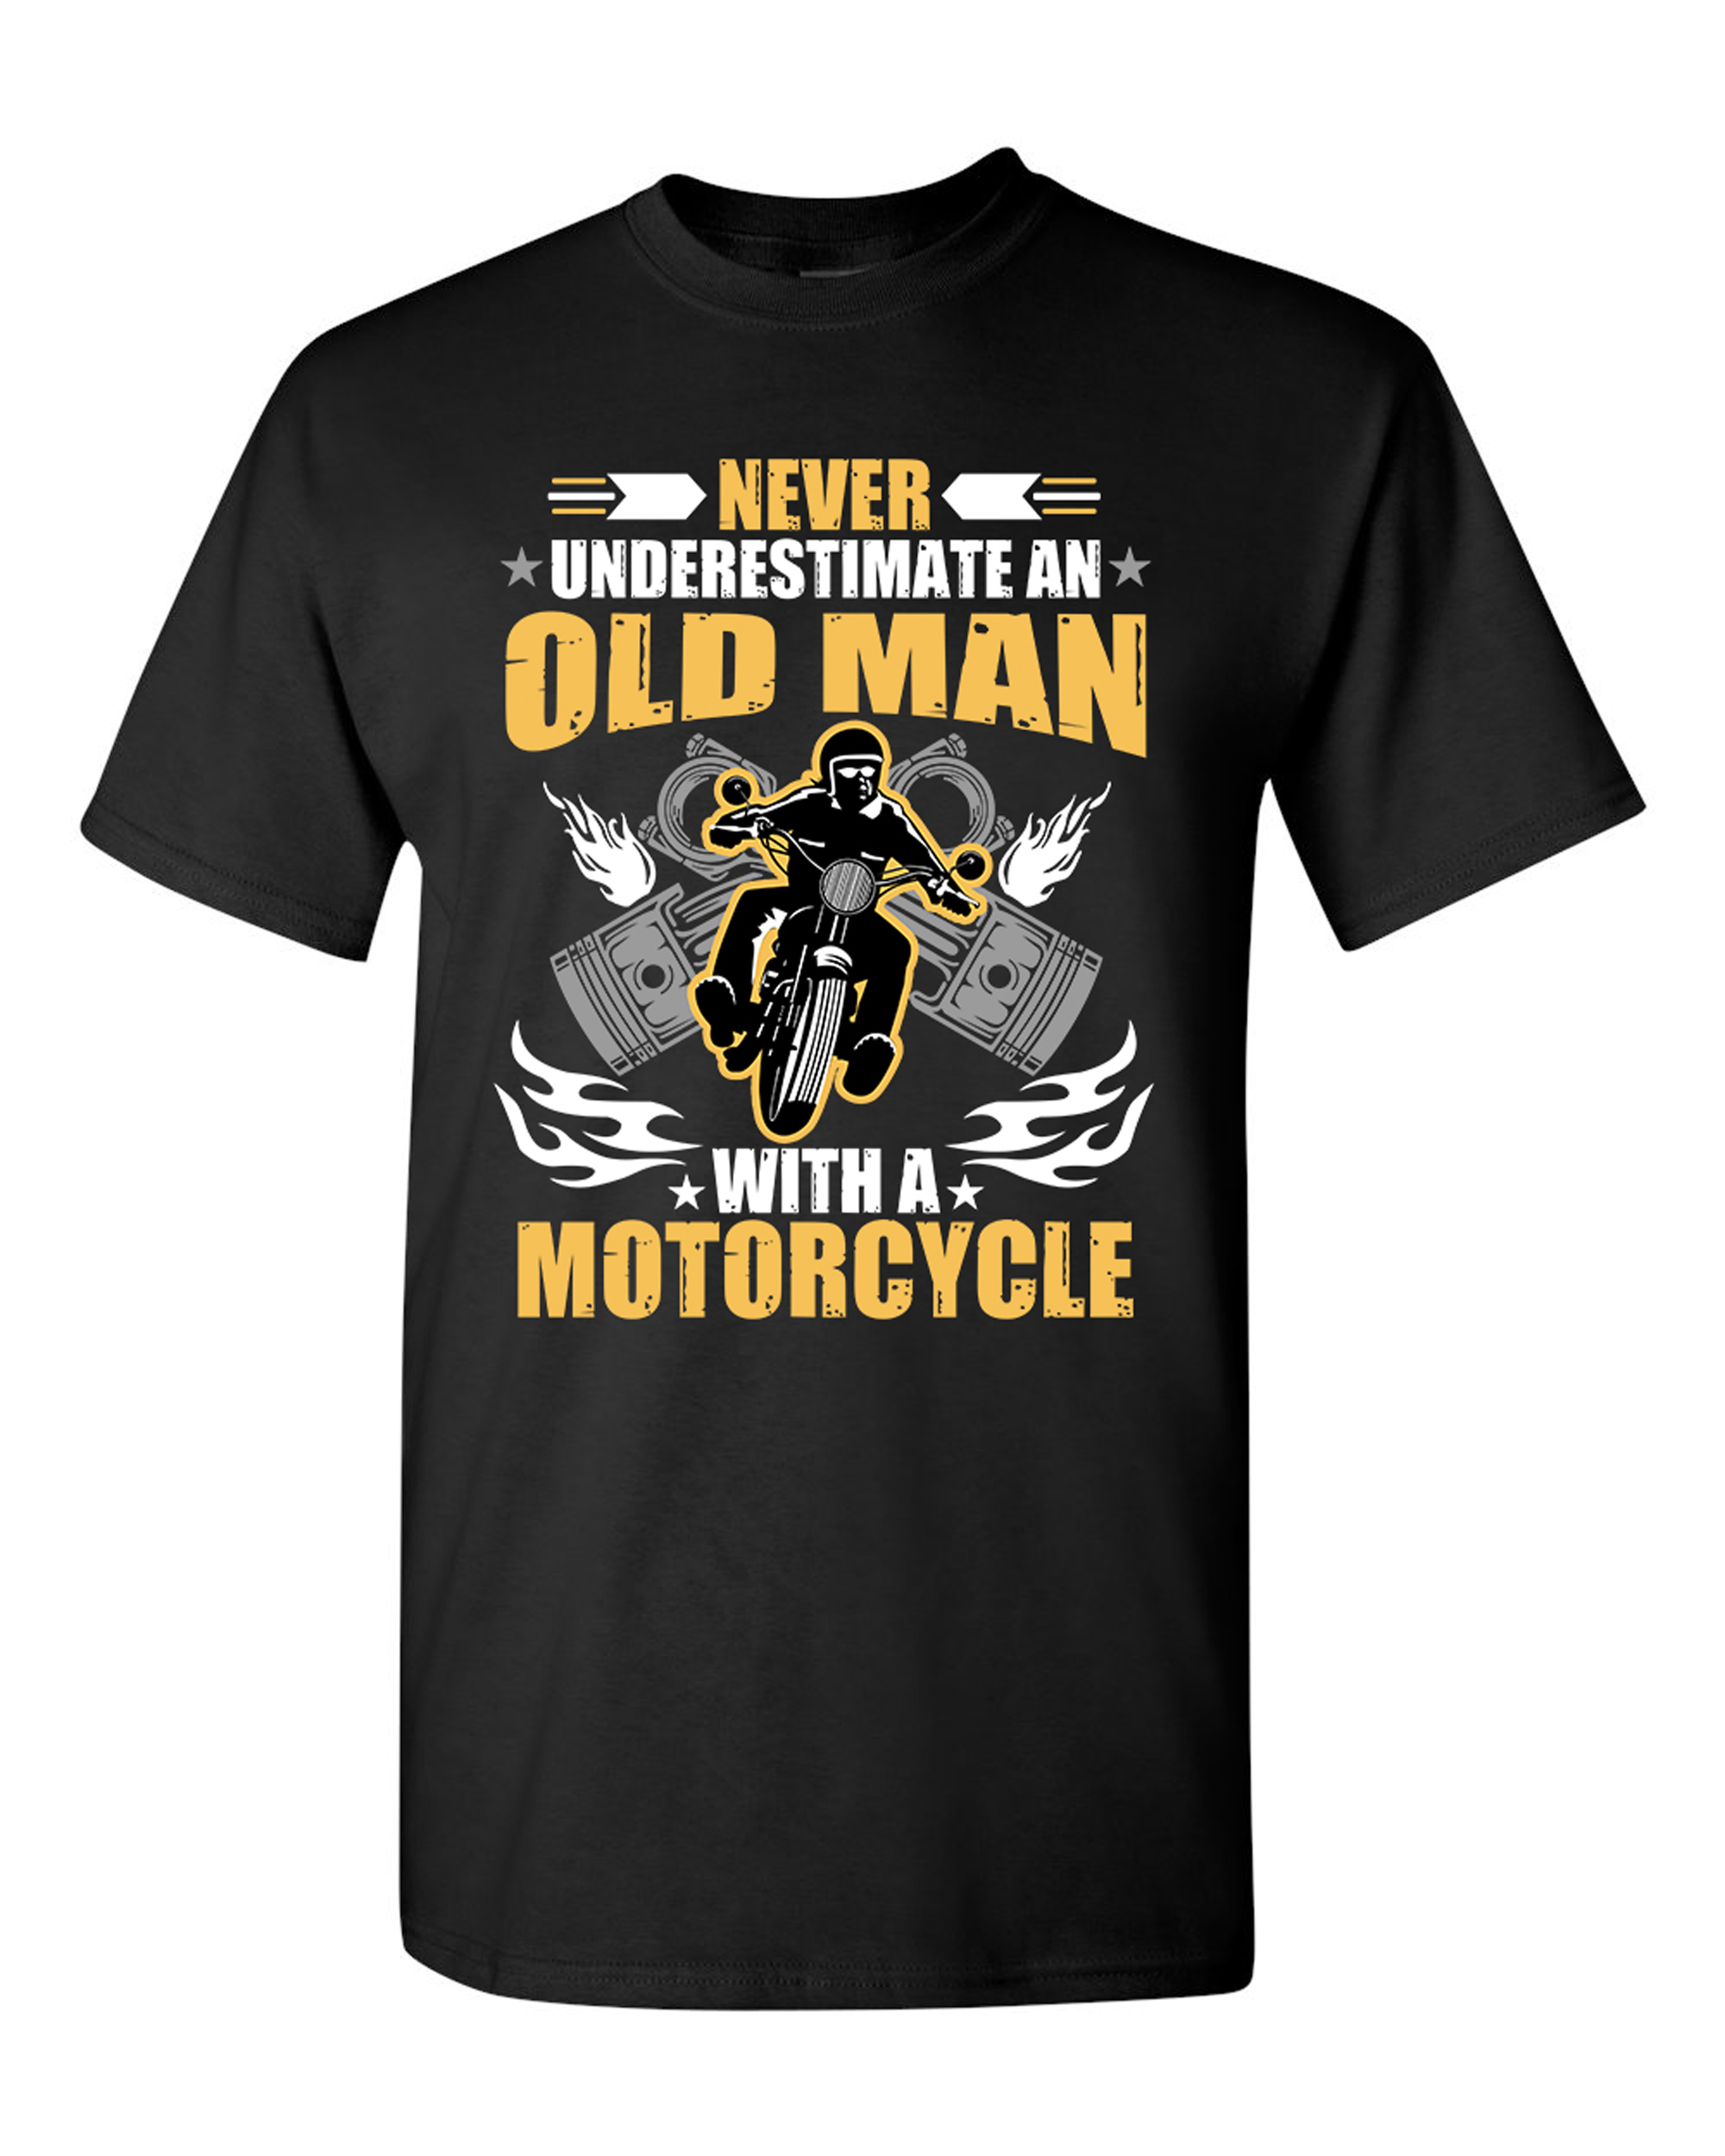 Never Underestimate An Old Man With A Motorcycle Funny DT Adult T-Shirt Tee